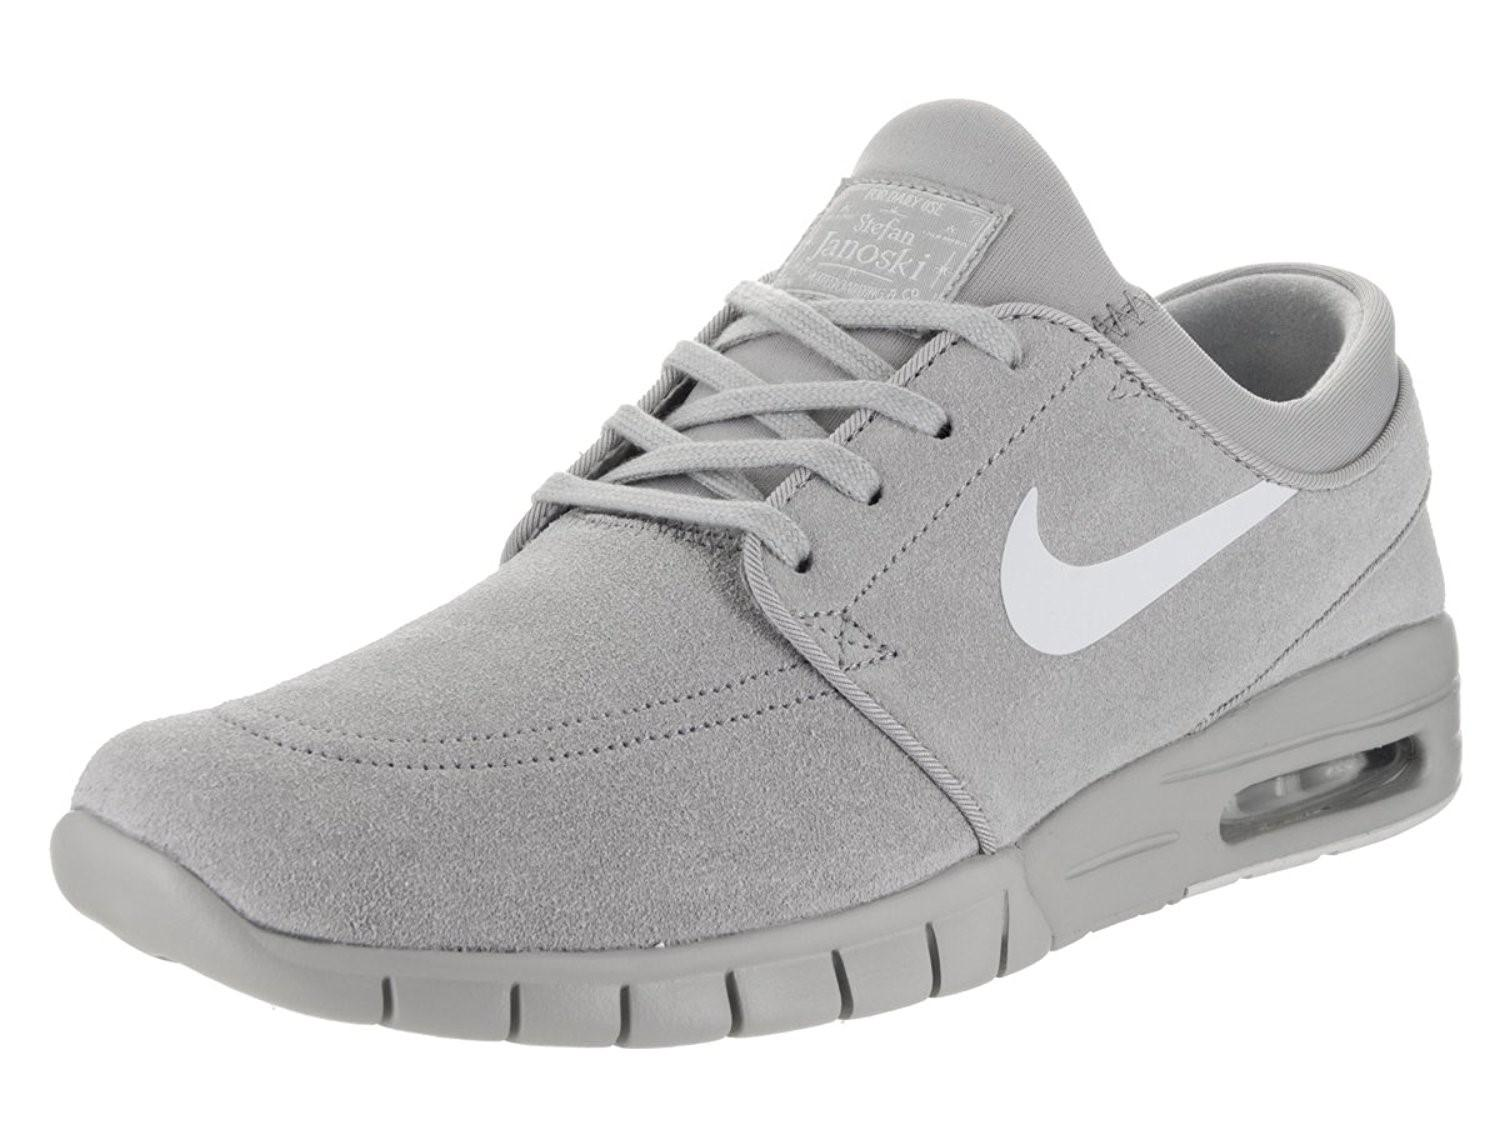 sports shoes 5ca49 6f51e Nike Air Sb Stefan Janoski Max L Suede Sneaker Current Model ...